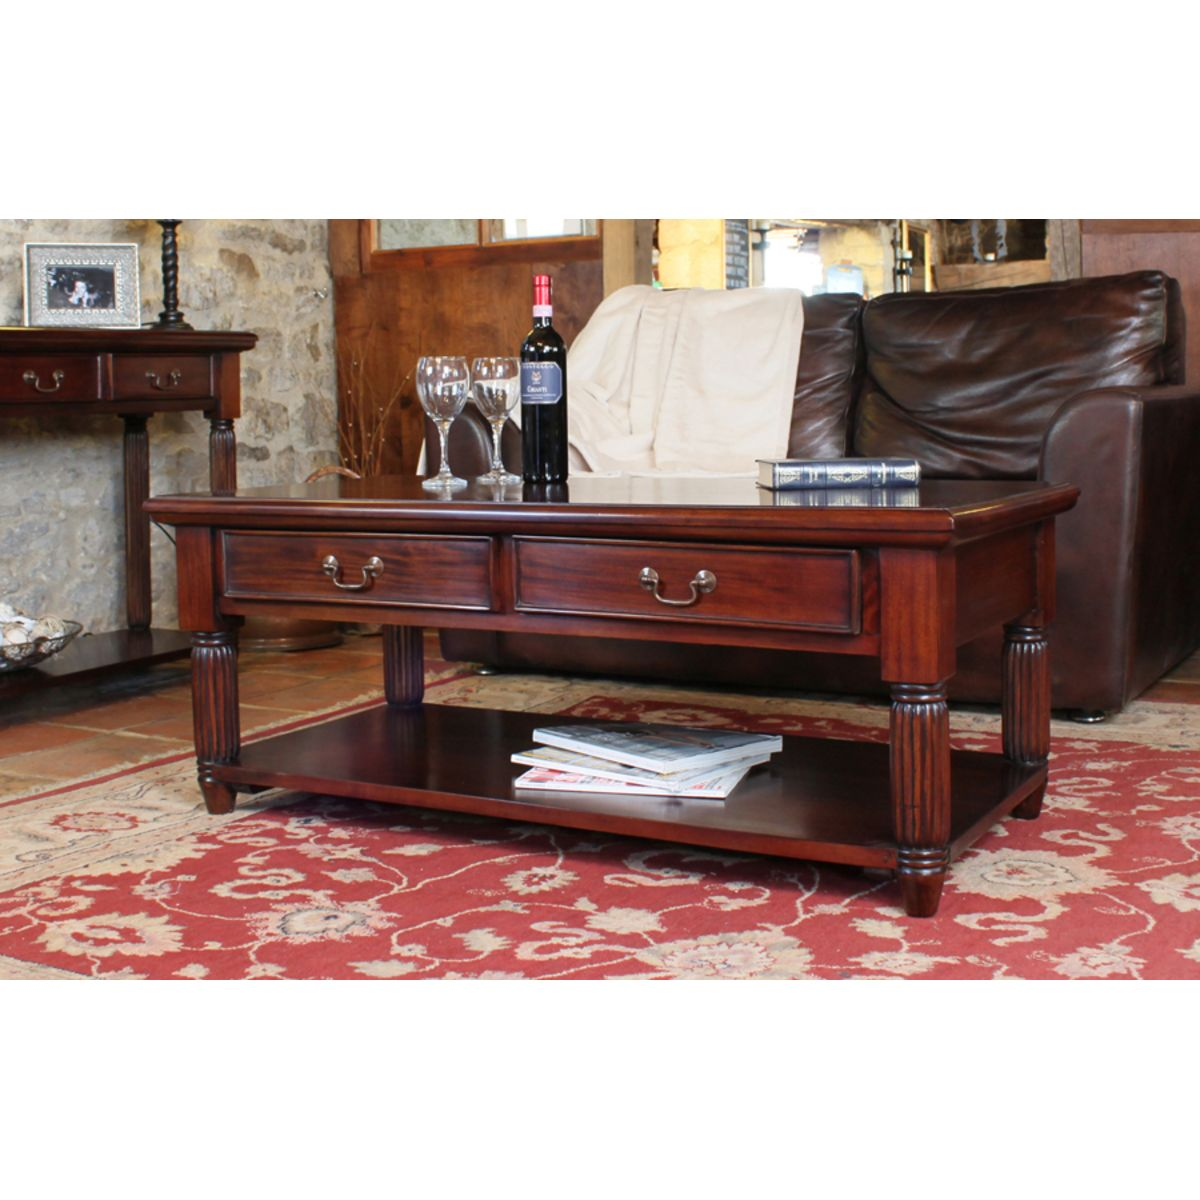 Coffee Table With Drawers Sale: Mahogany Coffee Table With Drawers La Roque